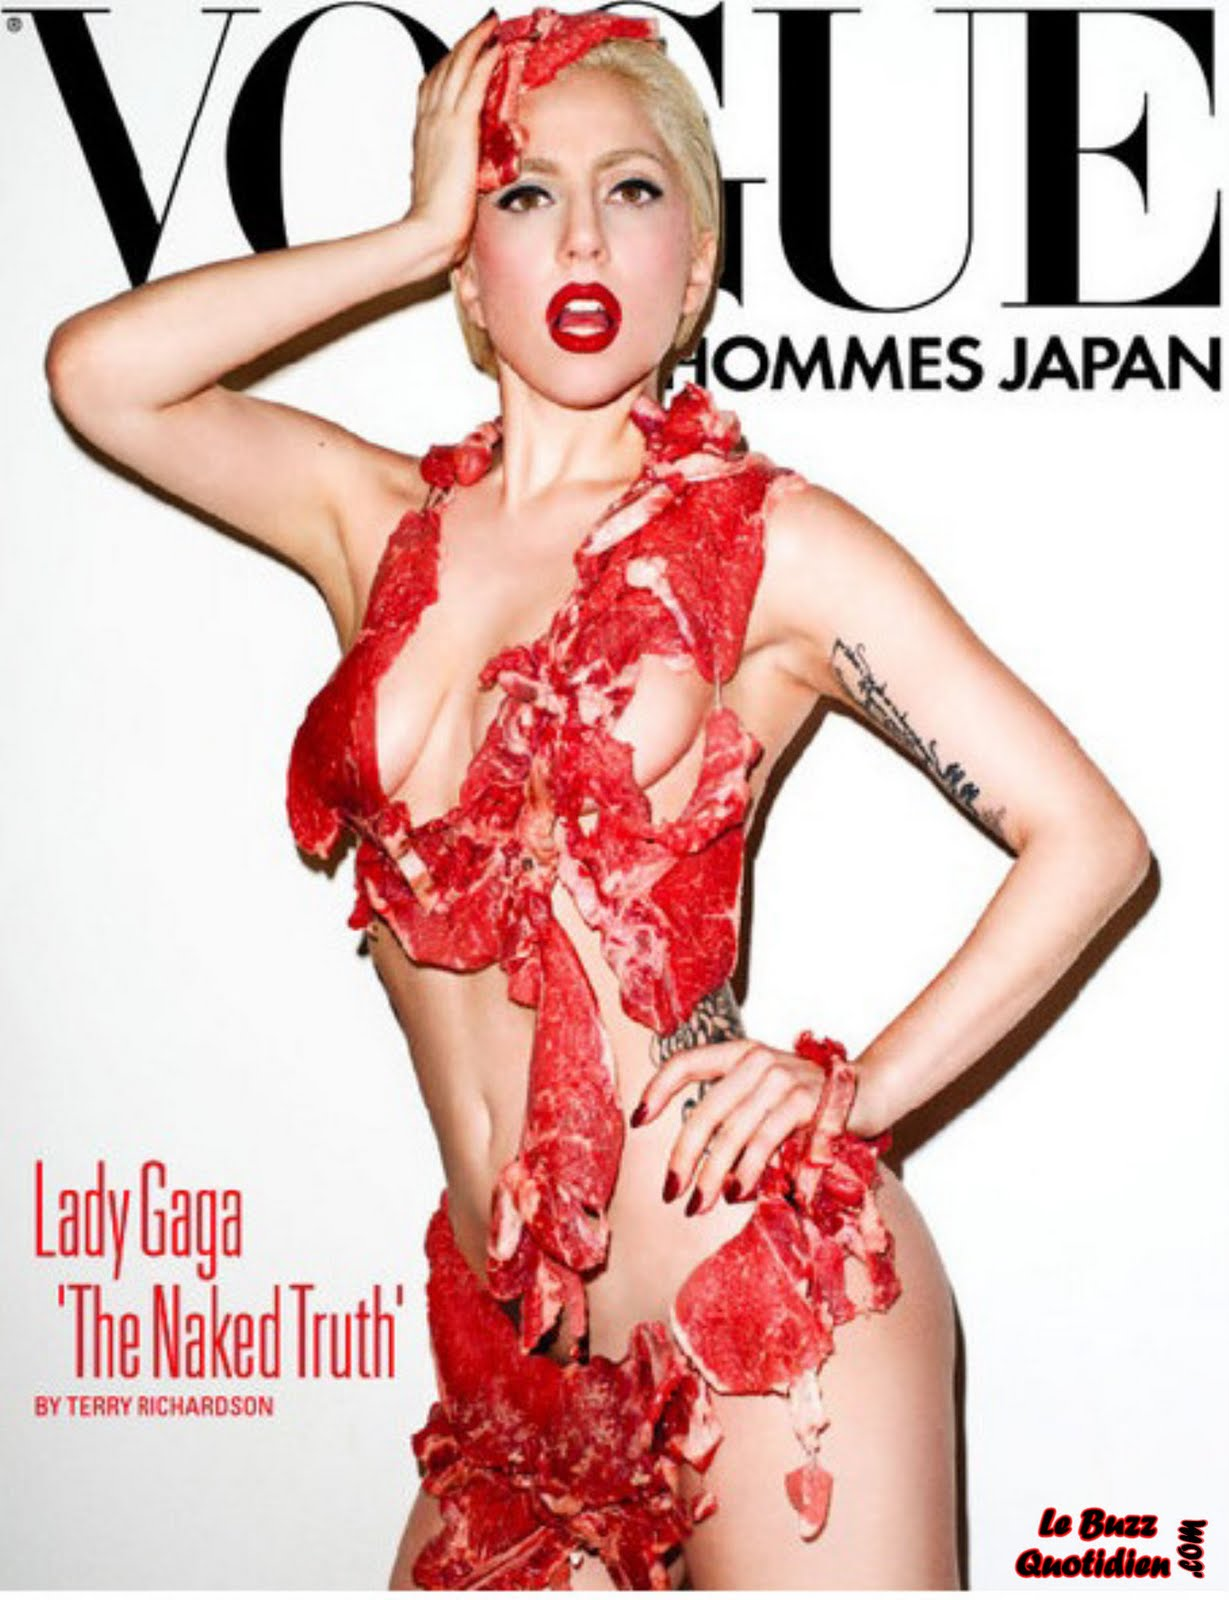 Lady Gaga steak nue Vogue